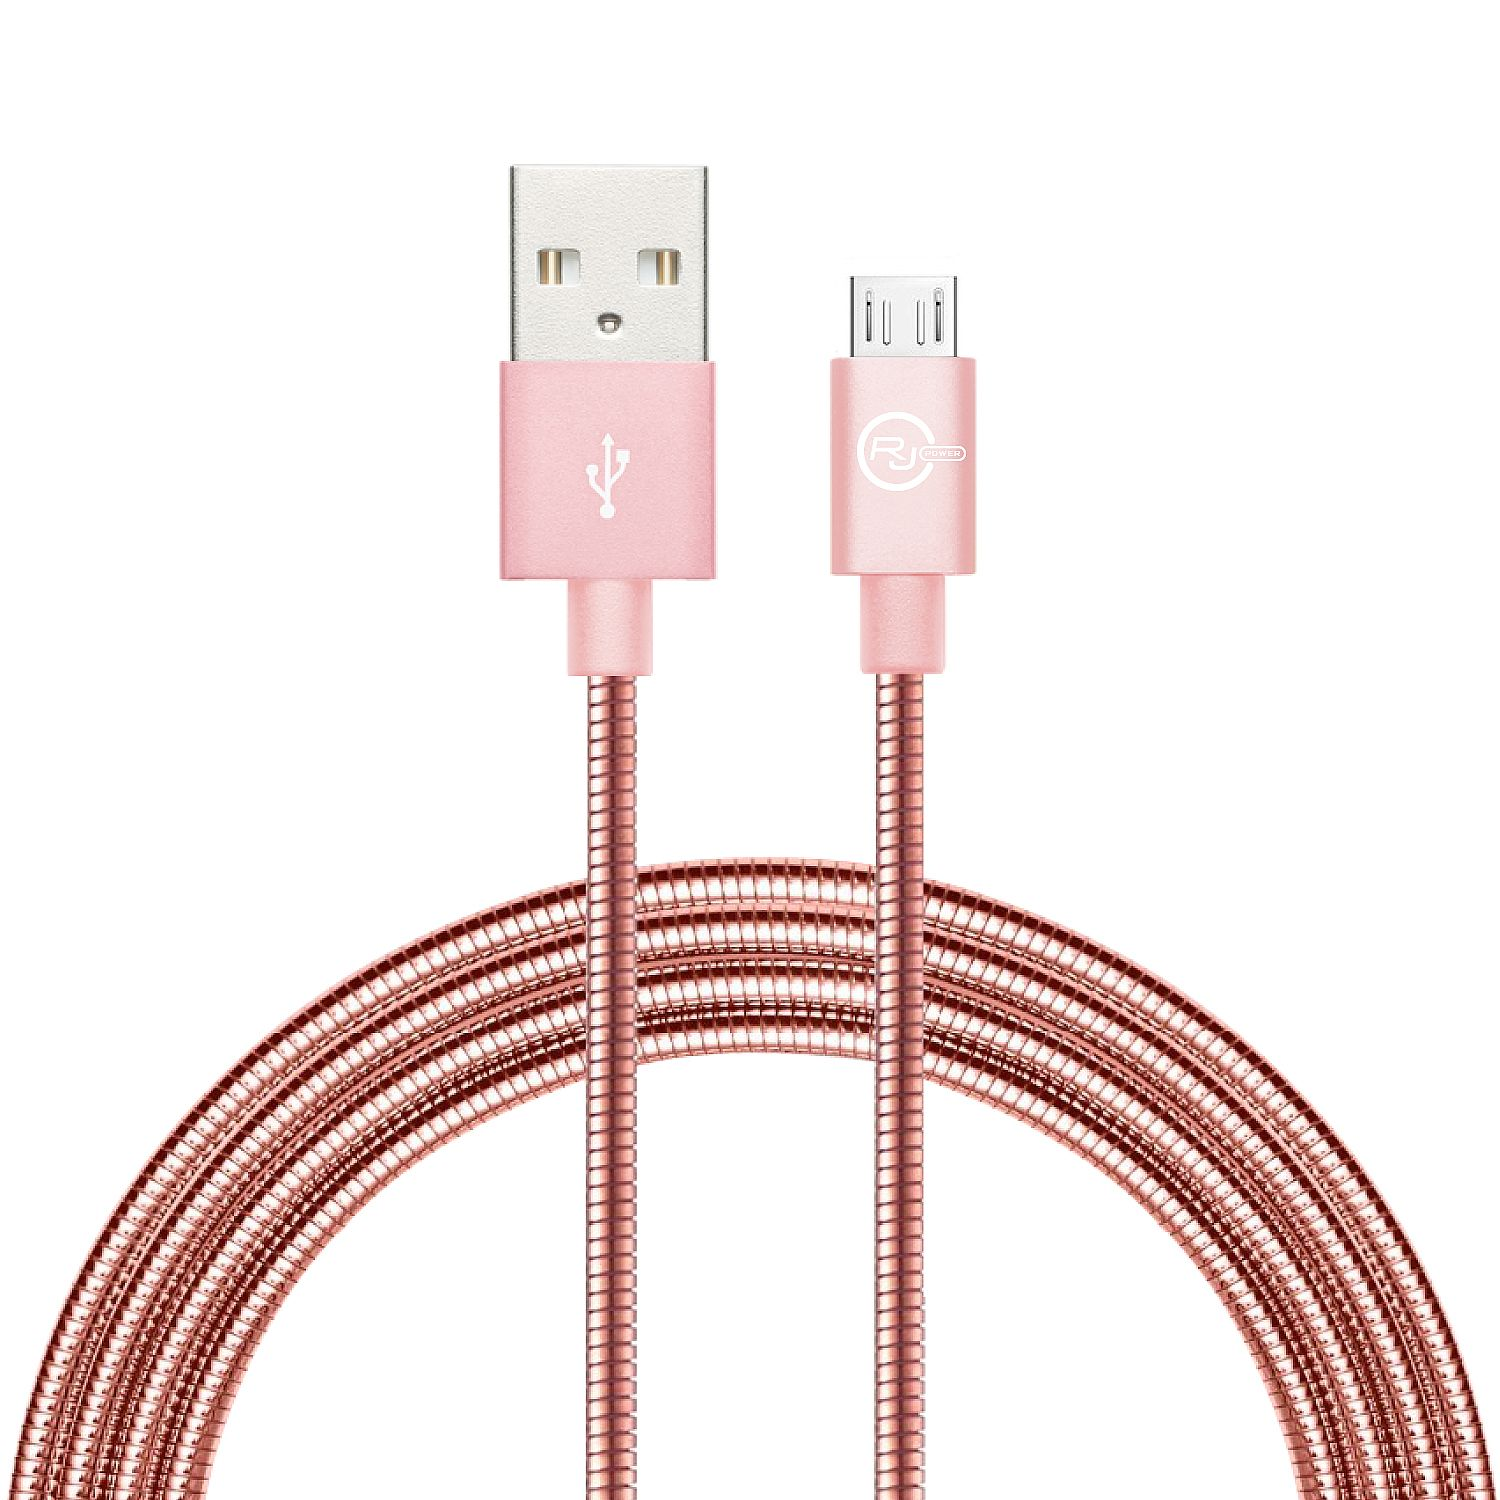 RJ Power Premium Metallic Sync/Charge Cable with Micro USB connector, 3 Ft- Rose Gold